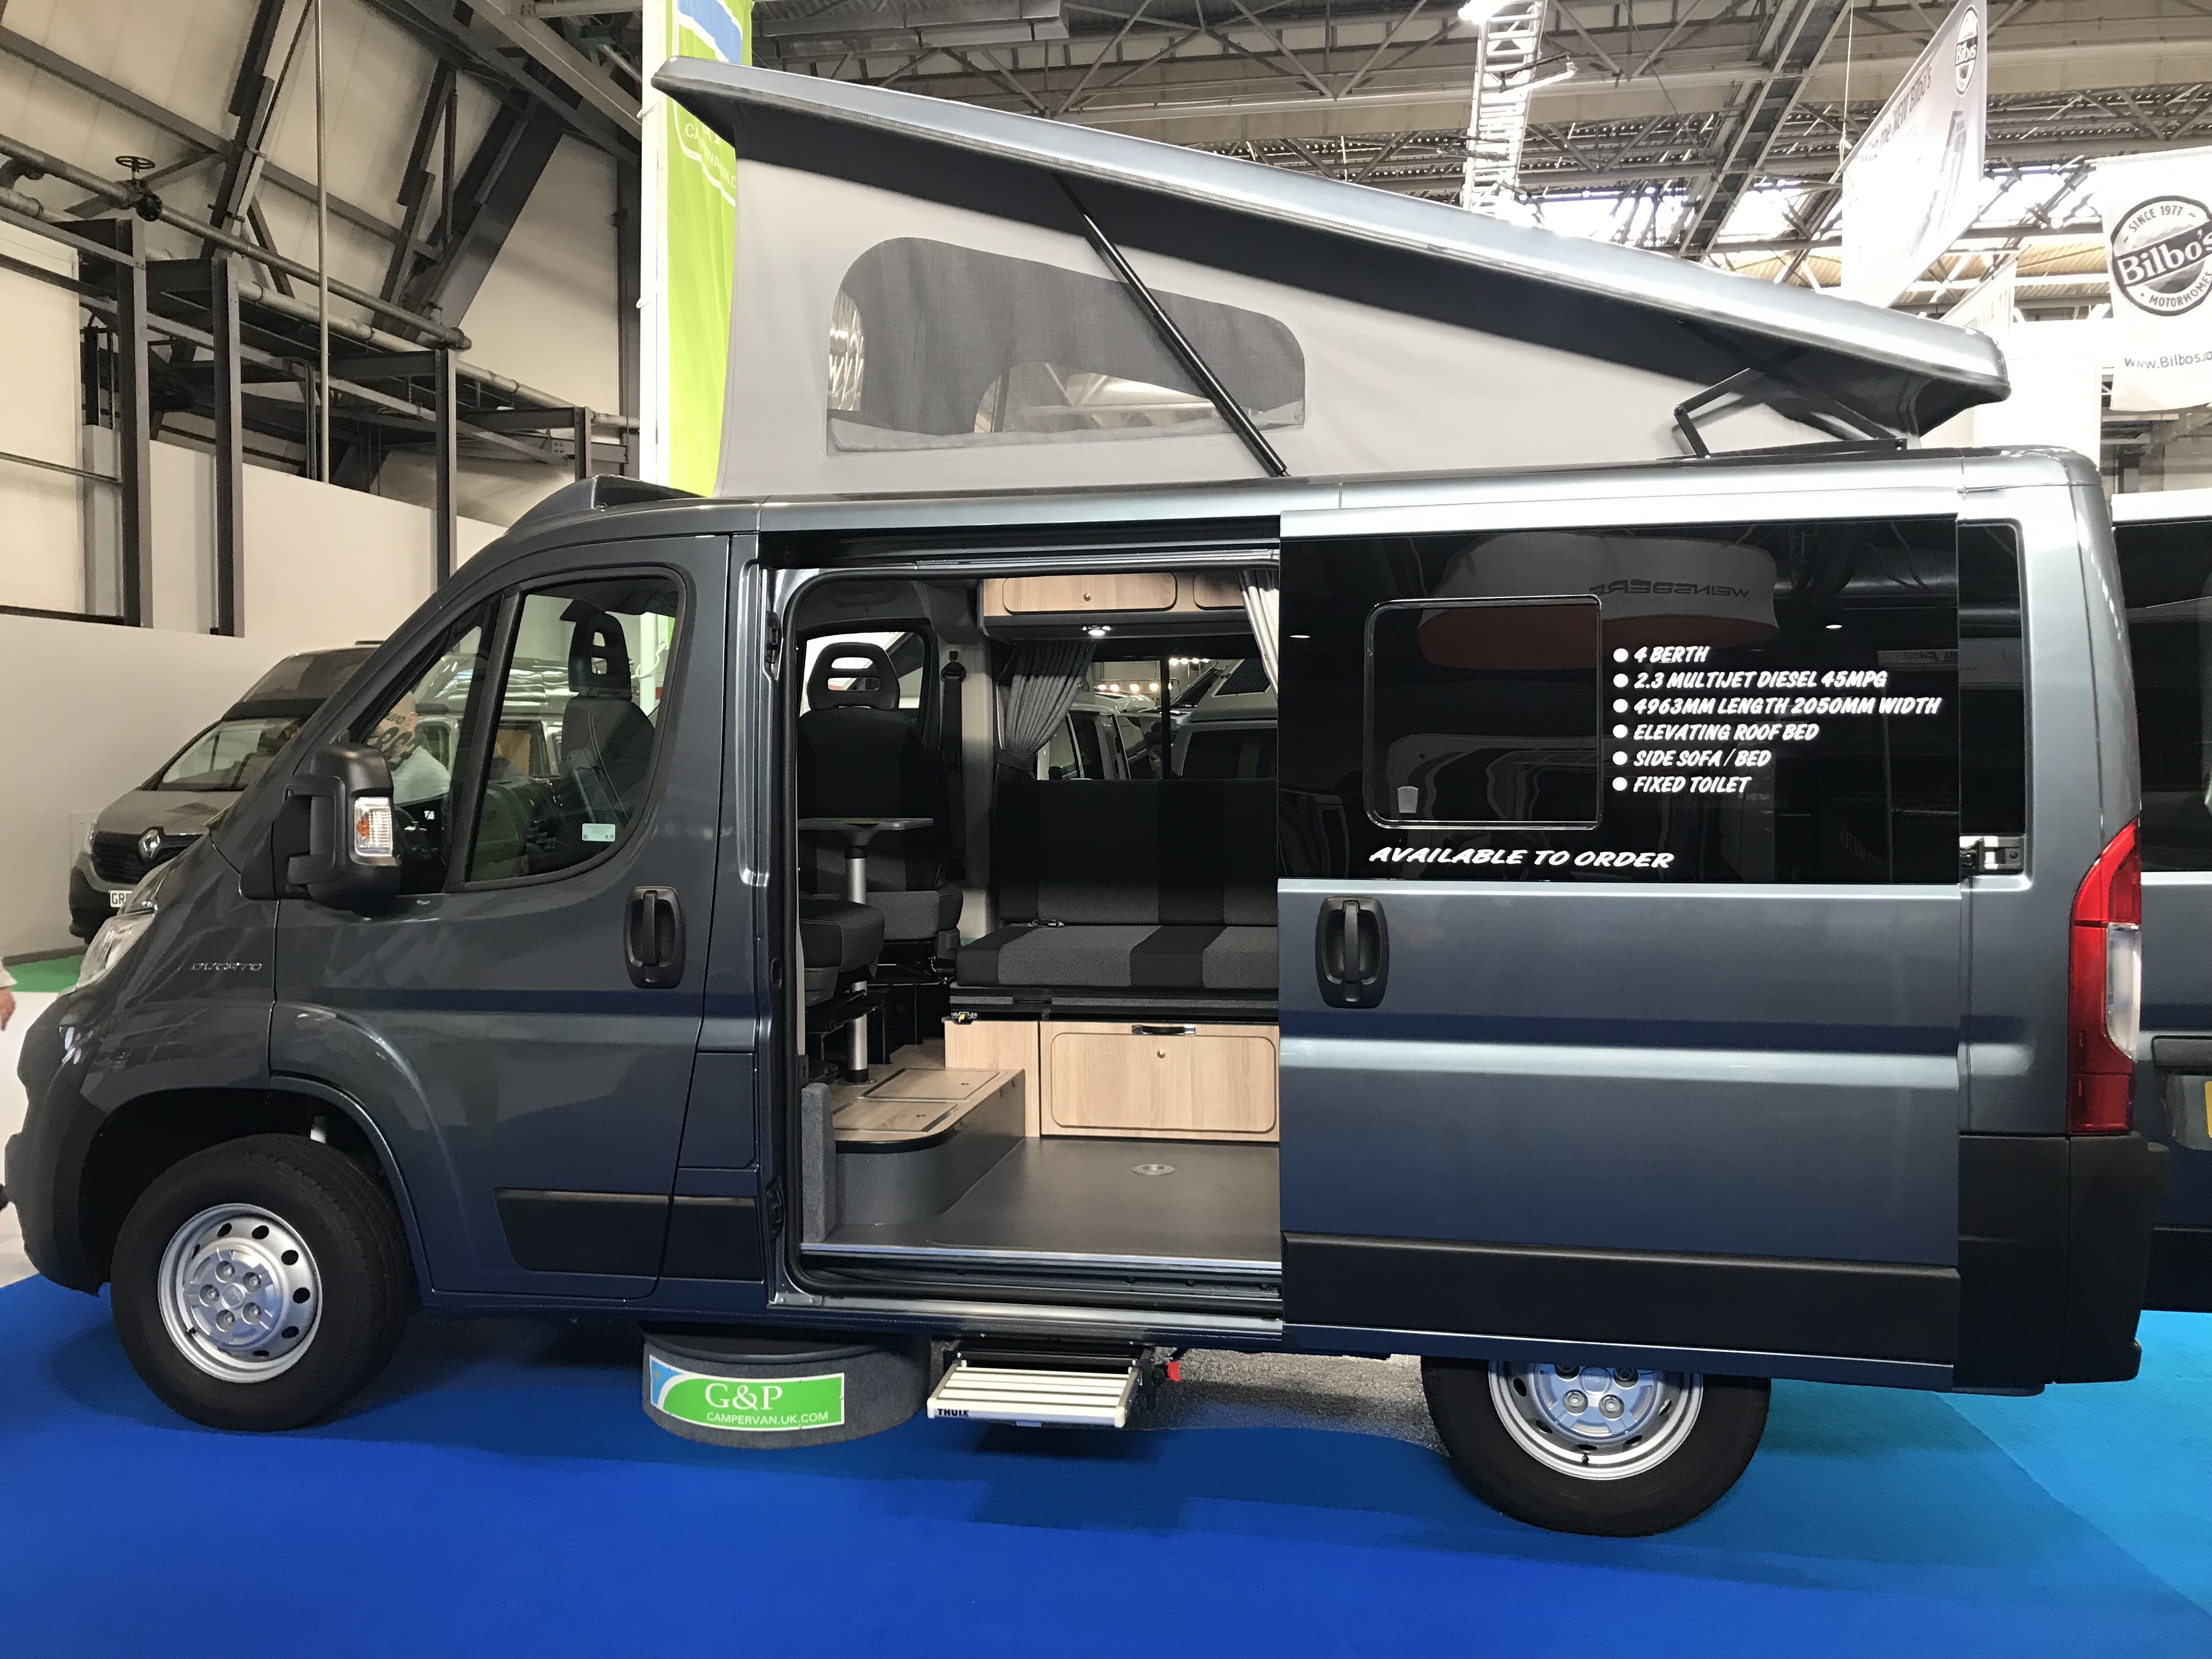 Campervan Conversions Specialist Staffordshire, UK